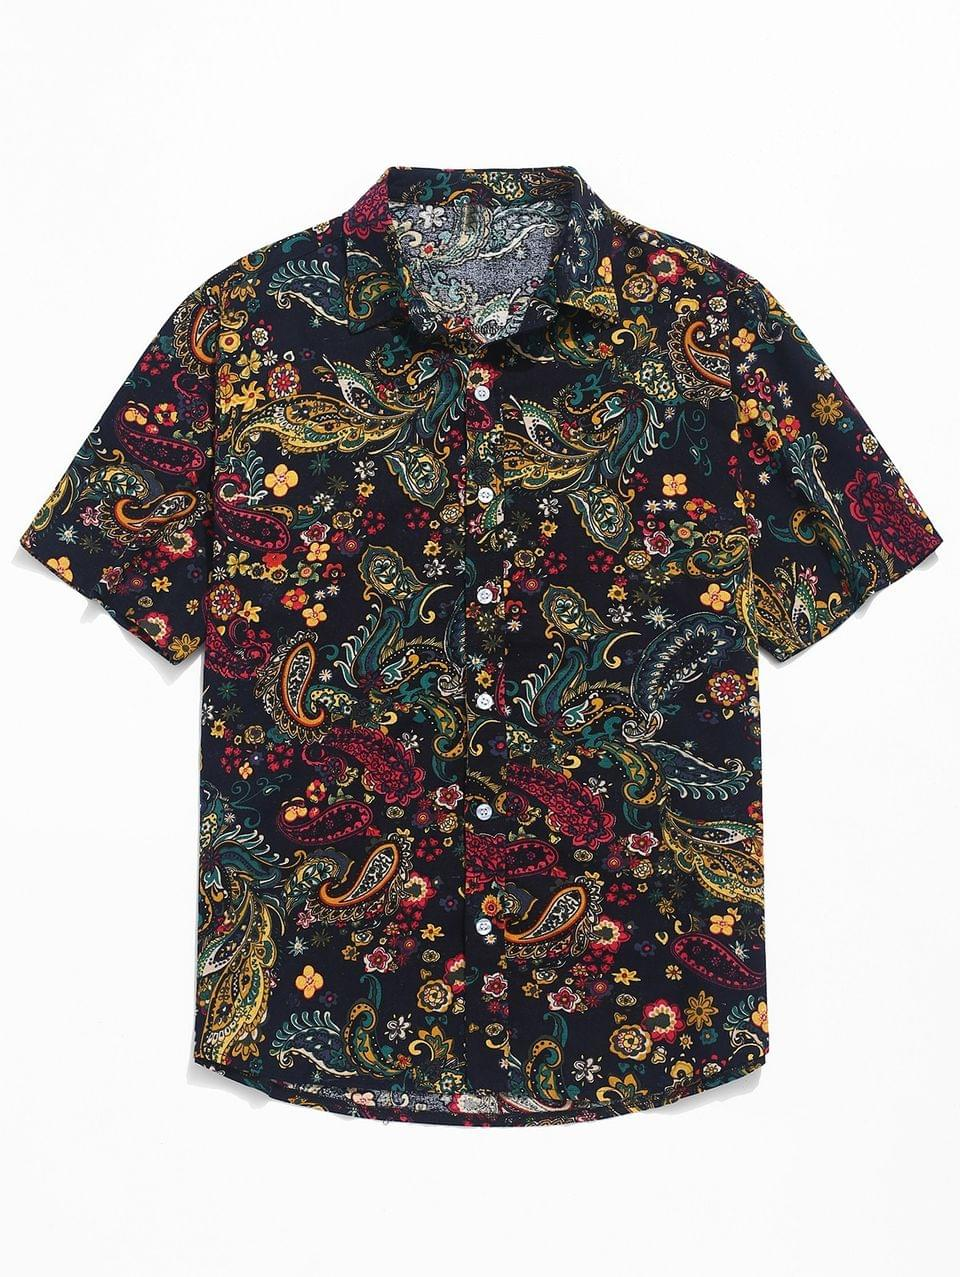 Men's Paisley Print Short Sleeve Shirt - Black Xs